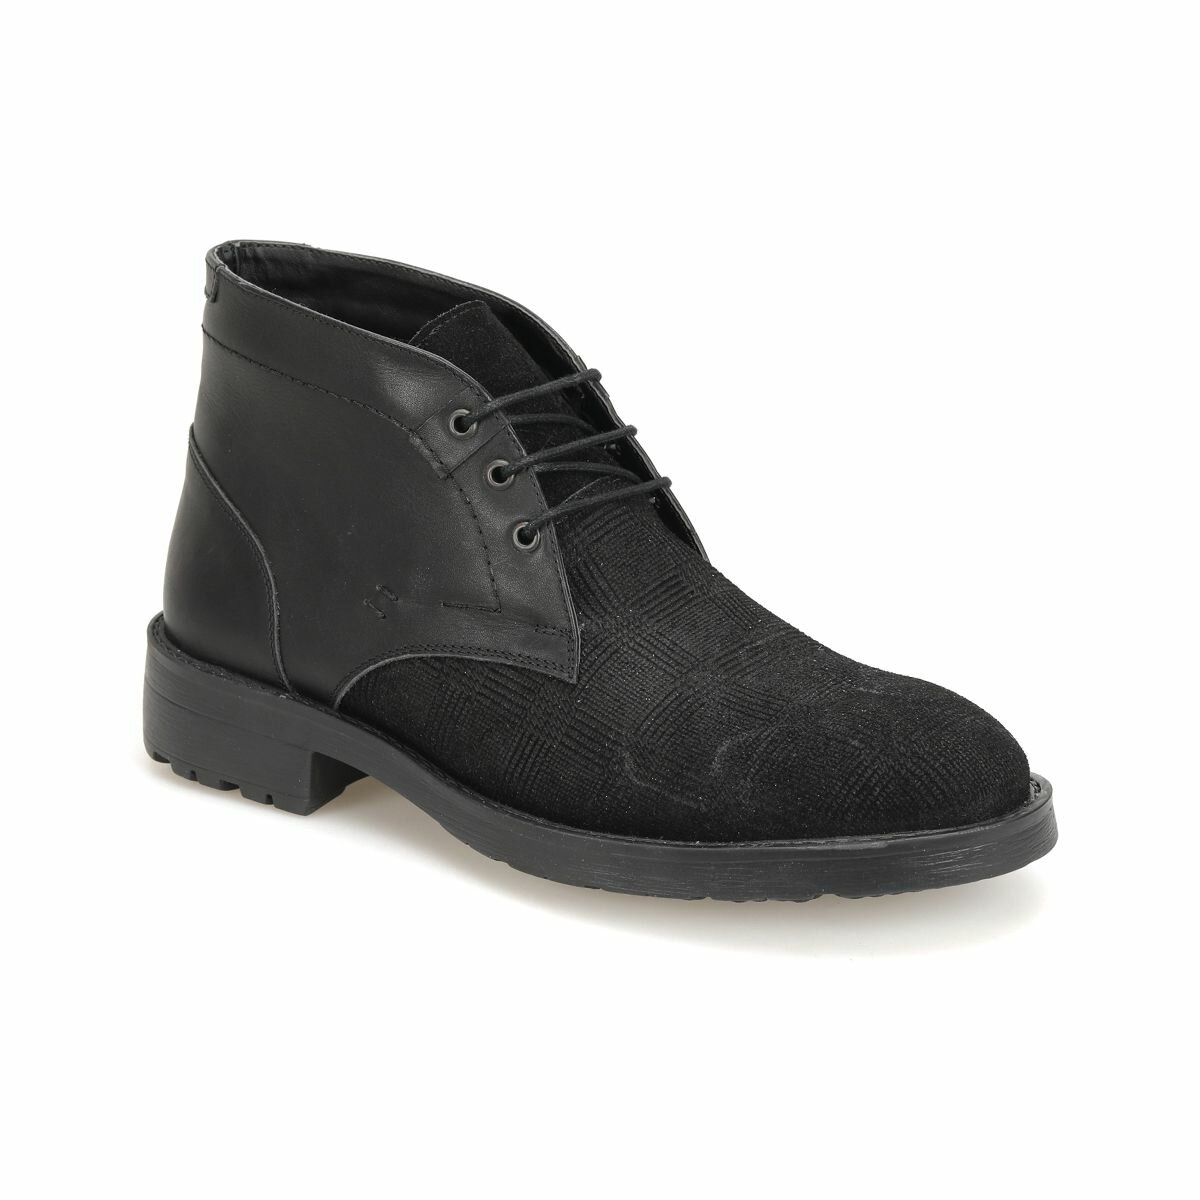 FLO CNR-73 Black Men Boots Garamond